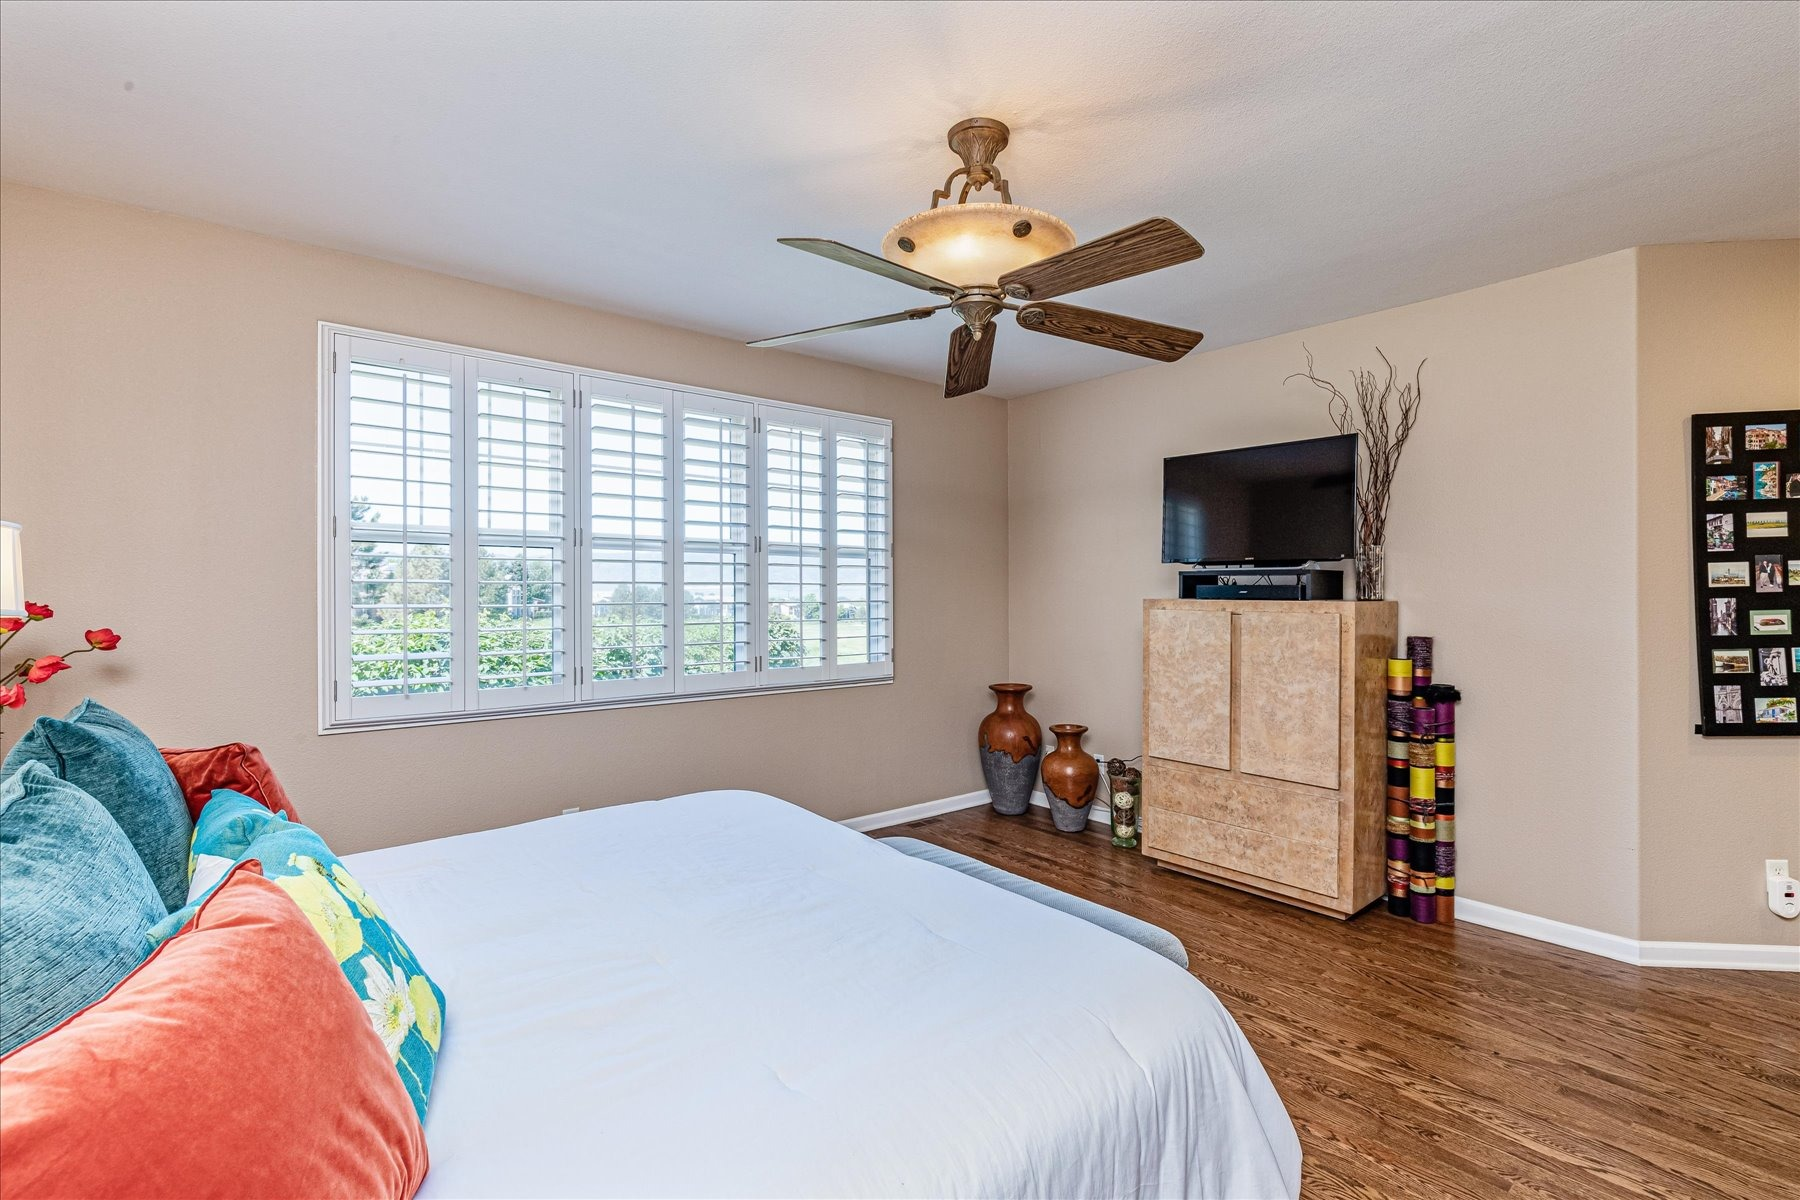 Plantation Shutters Throughout Entire Home